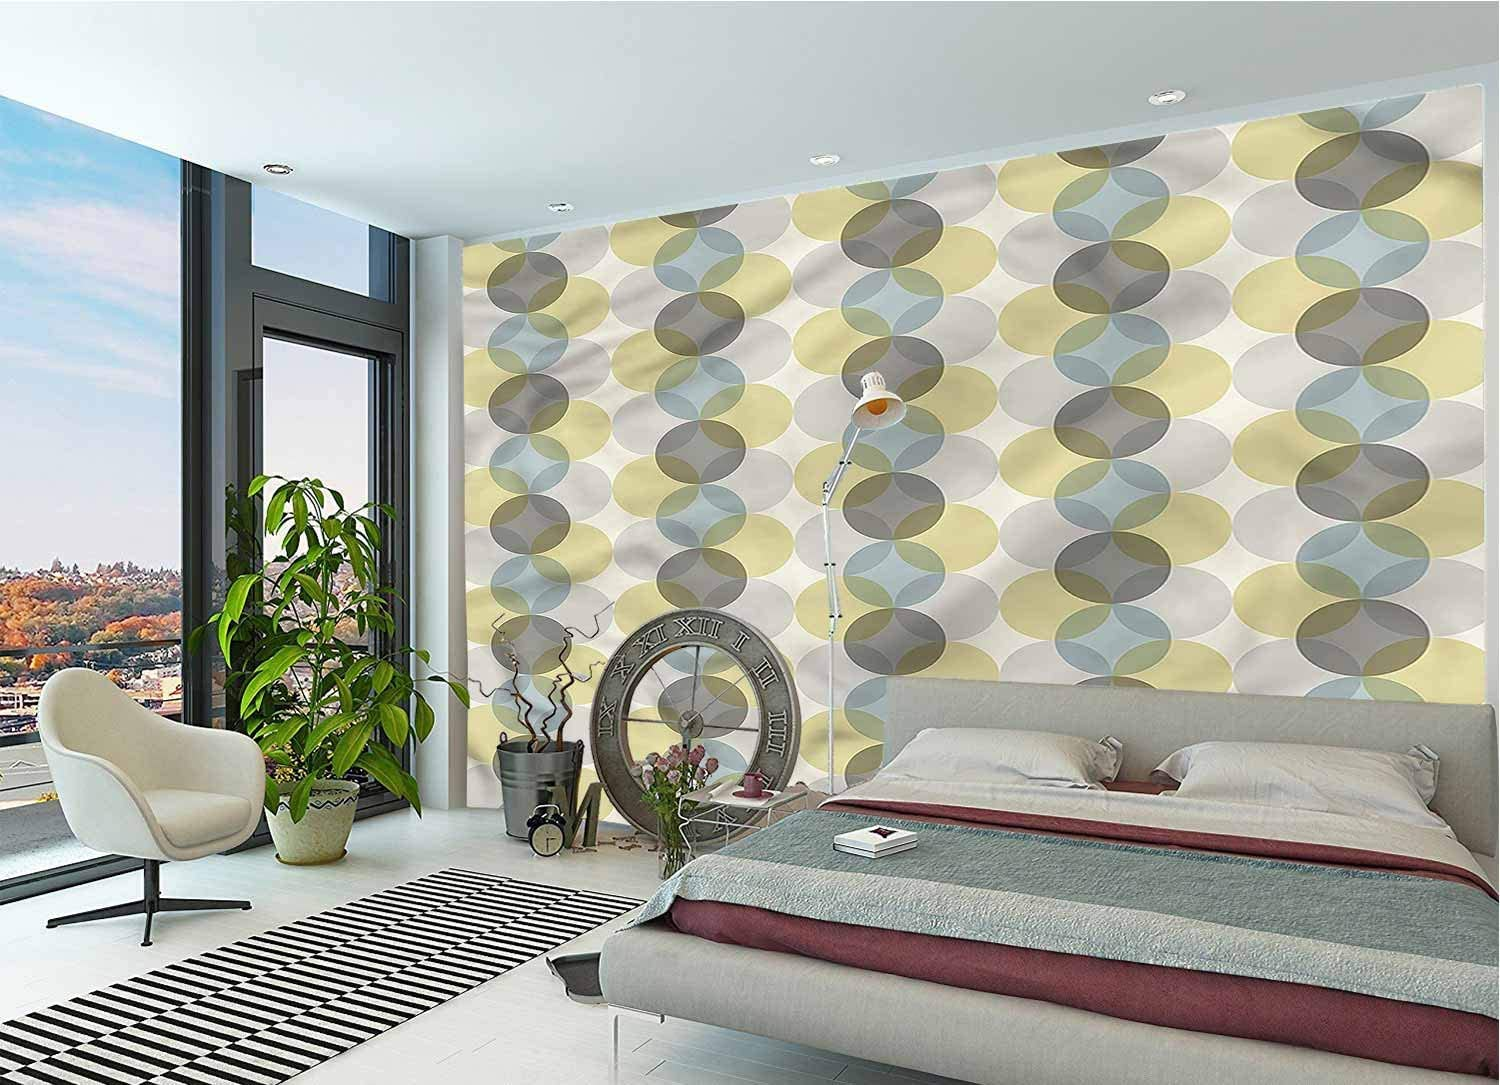 LCGGDB Circle Wall Mural Decal Max 86% OFF Peel 40% OFF Cheap Sale Design Midcentury an Fifties